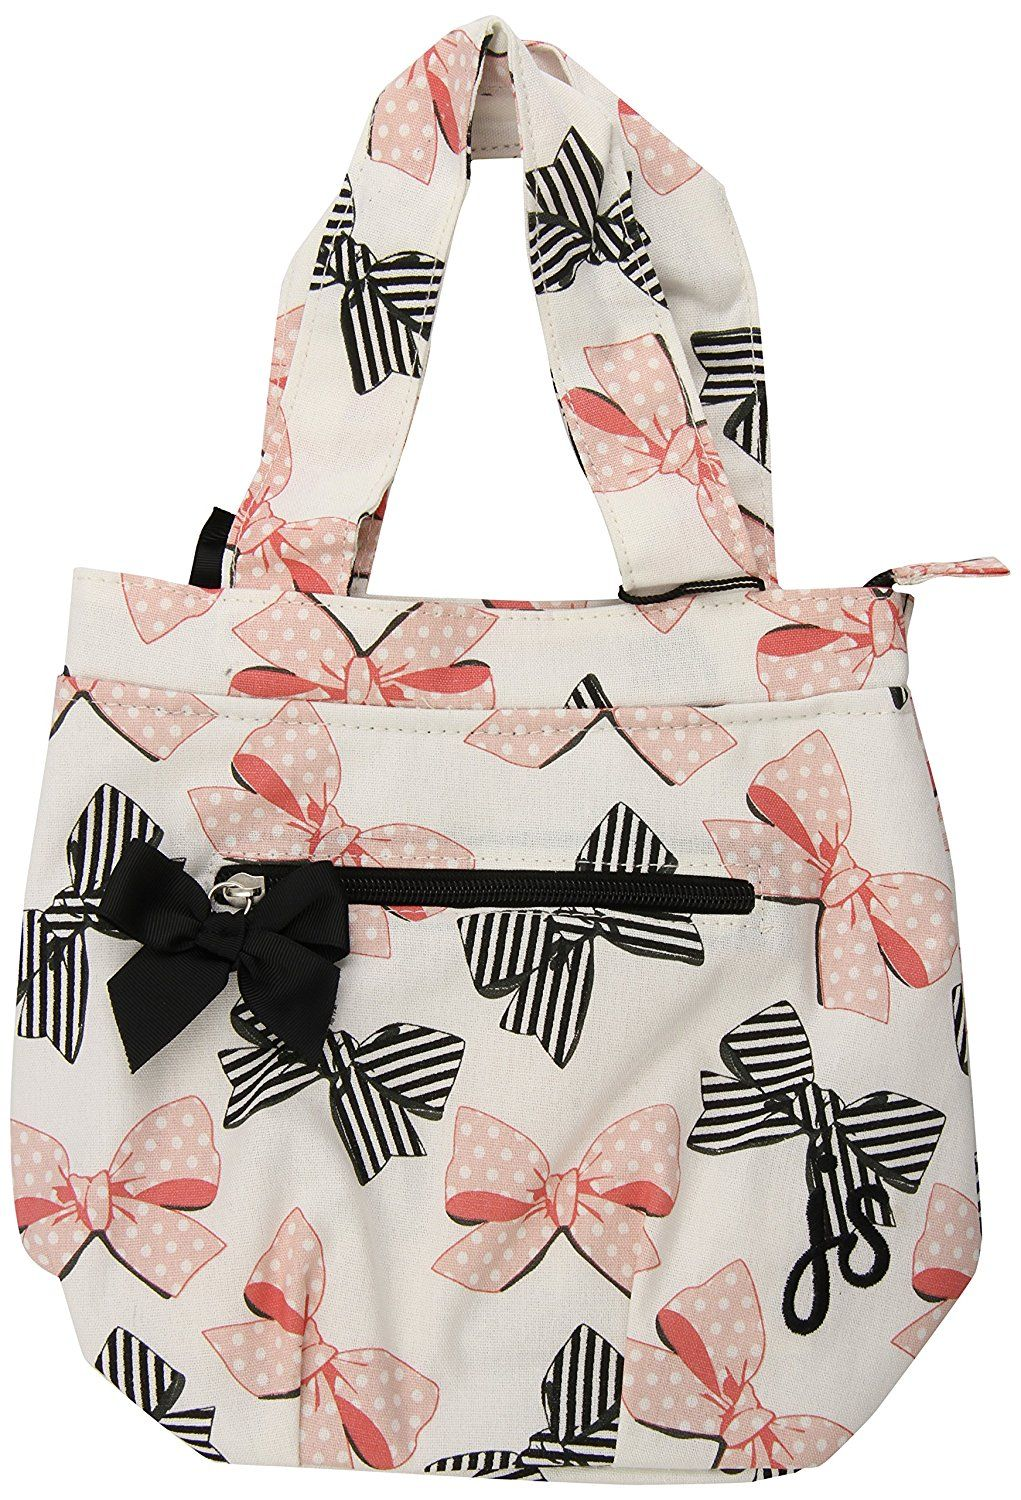 Jessie Steele Insulated Lunch Tote Bag, Bow Peep * Find